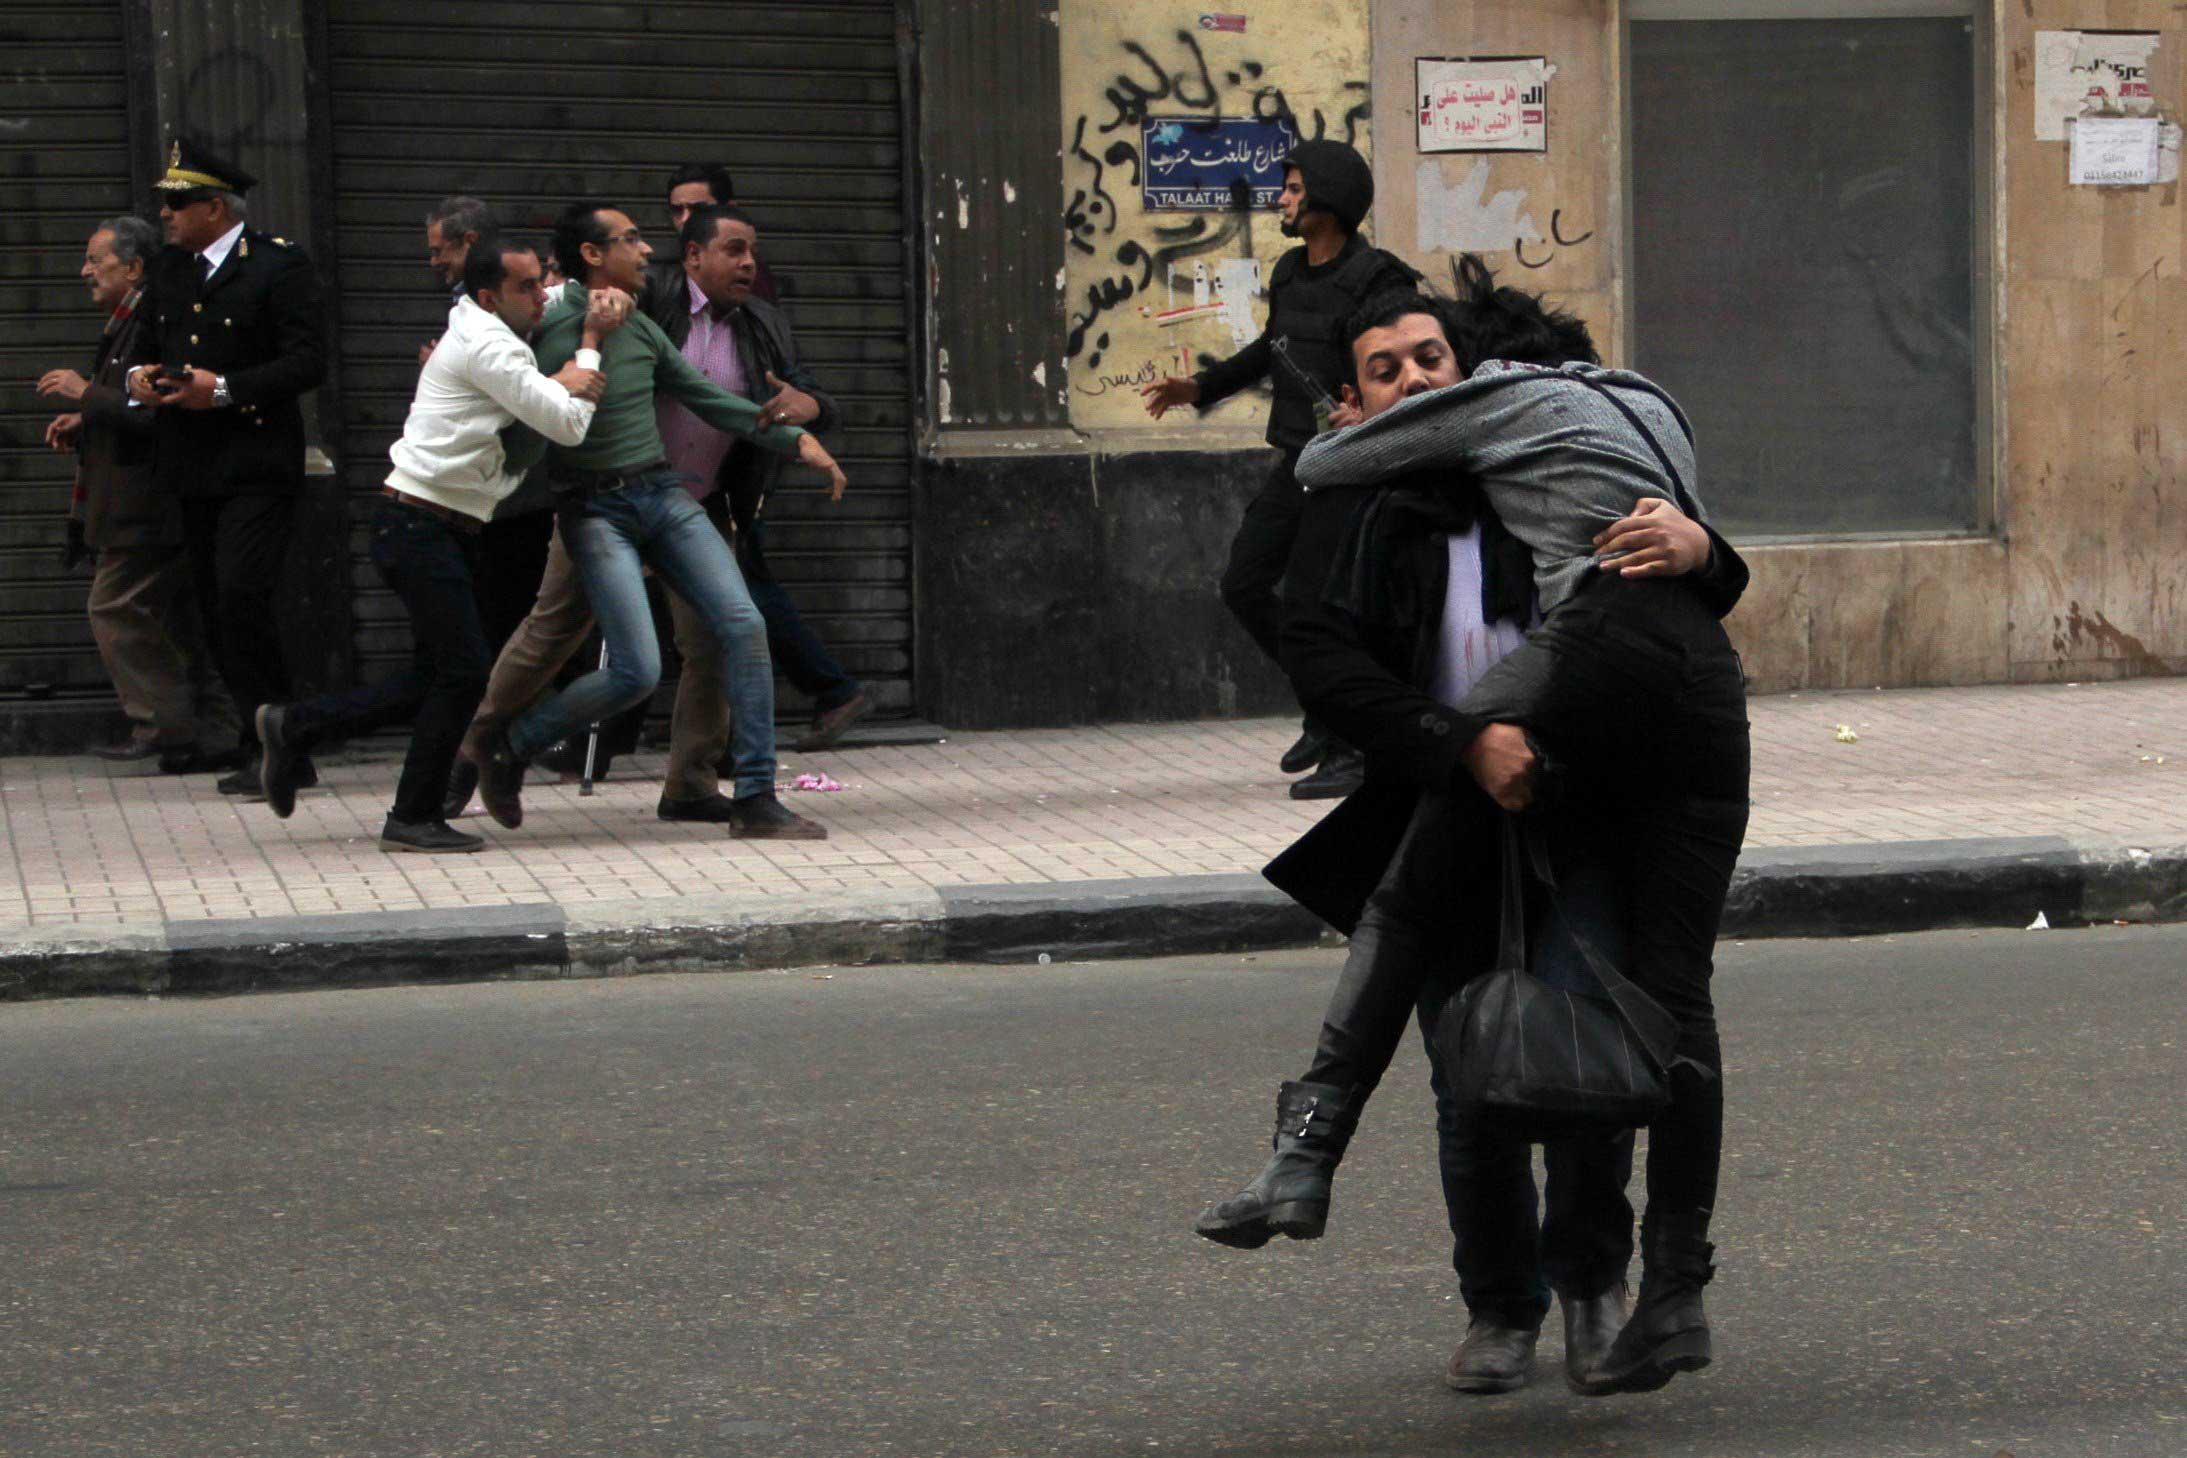 Shaima al-Sabbagh is carried away after being shot in Cairo, Jan. 24, 2015.